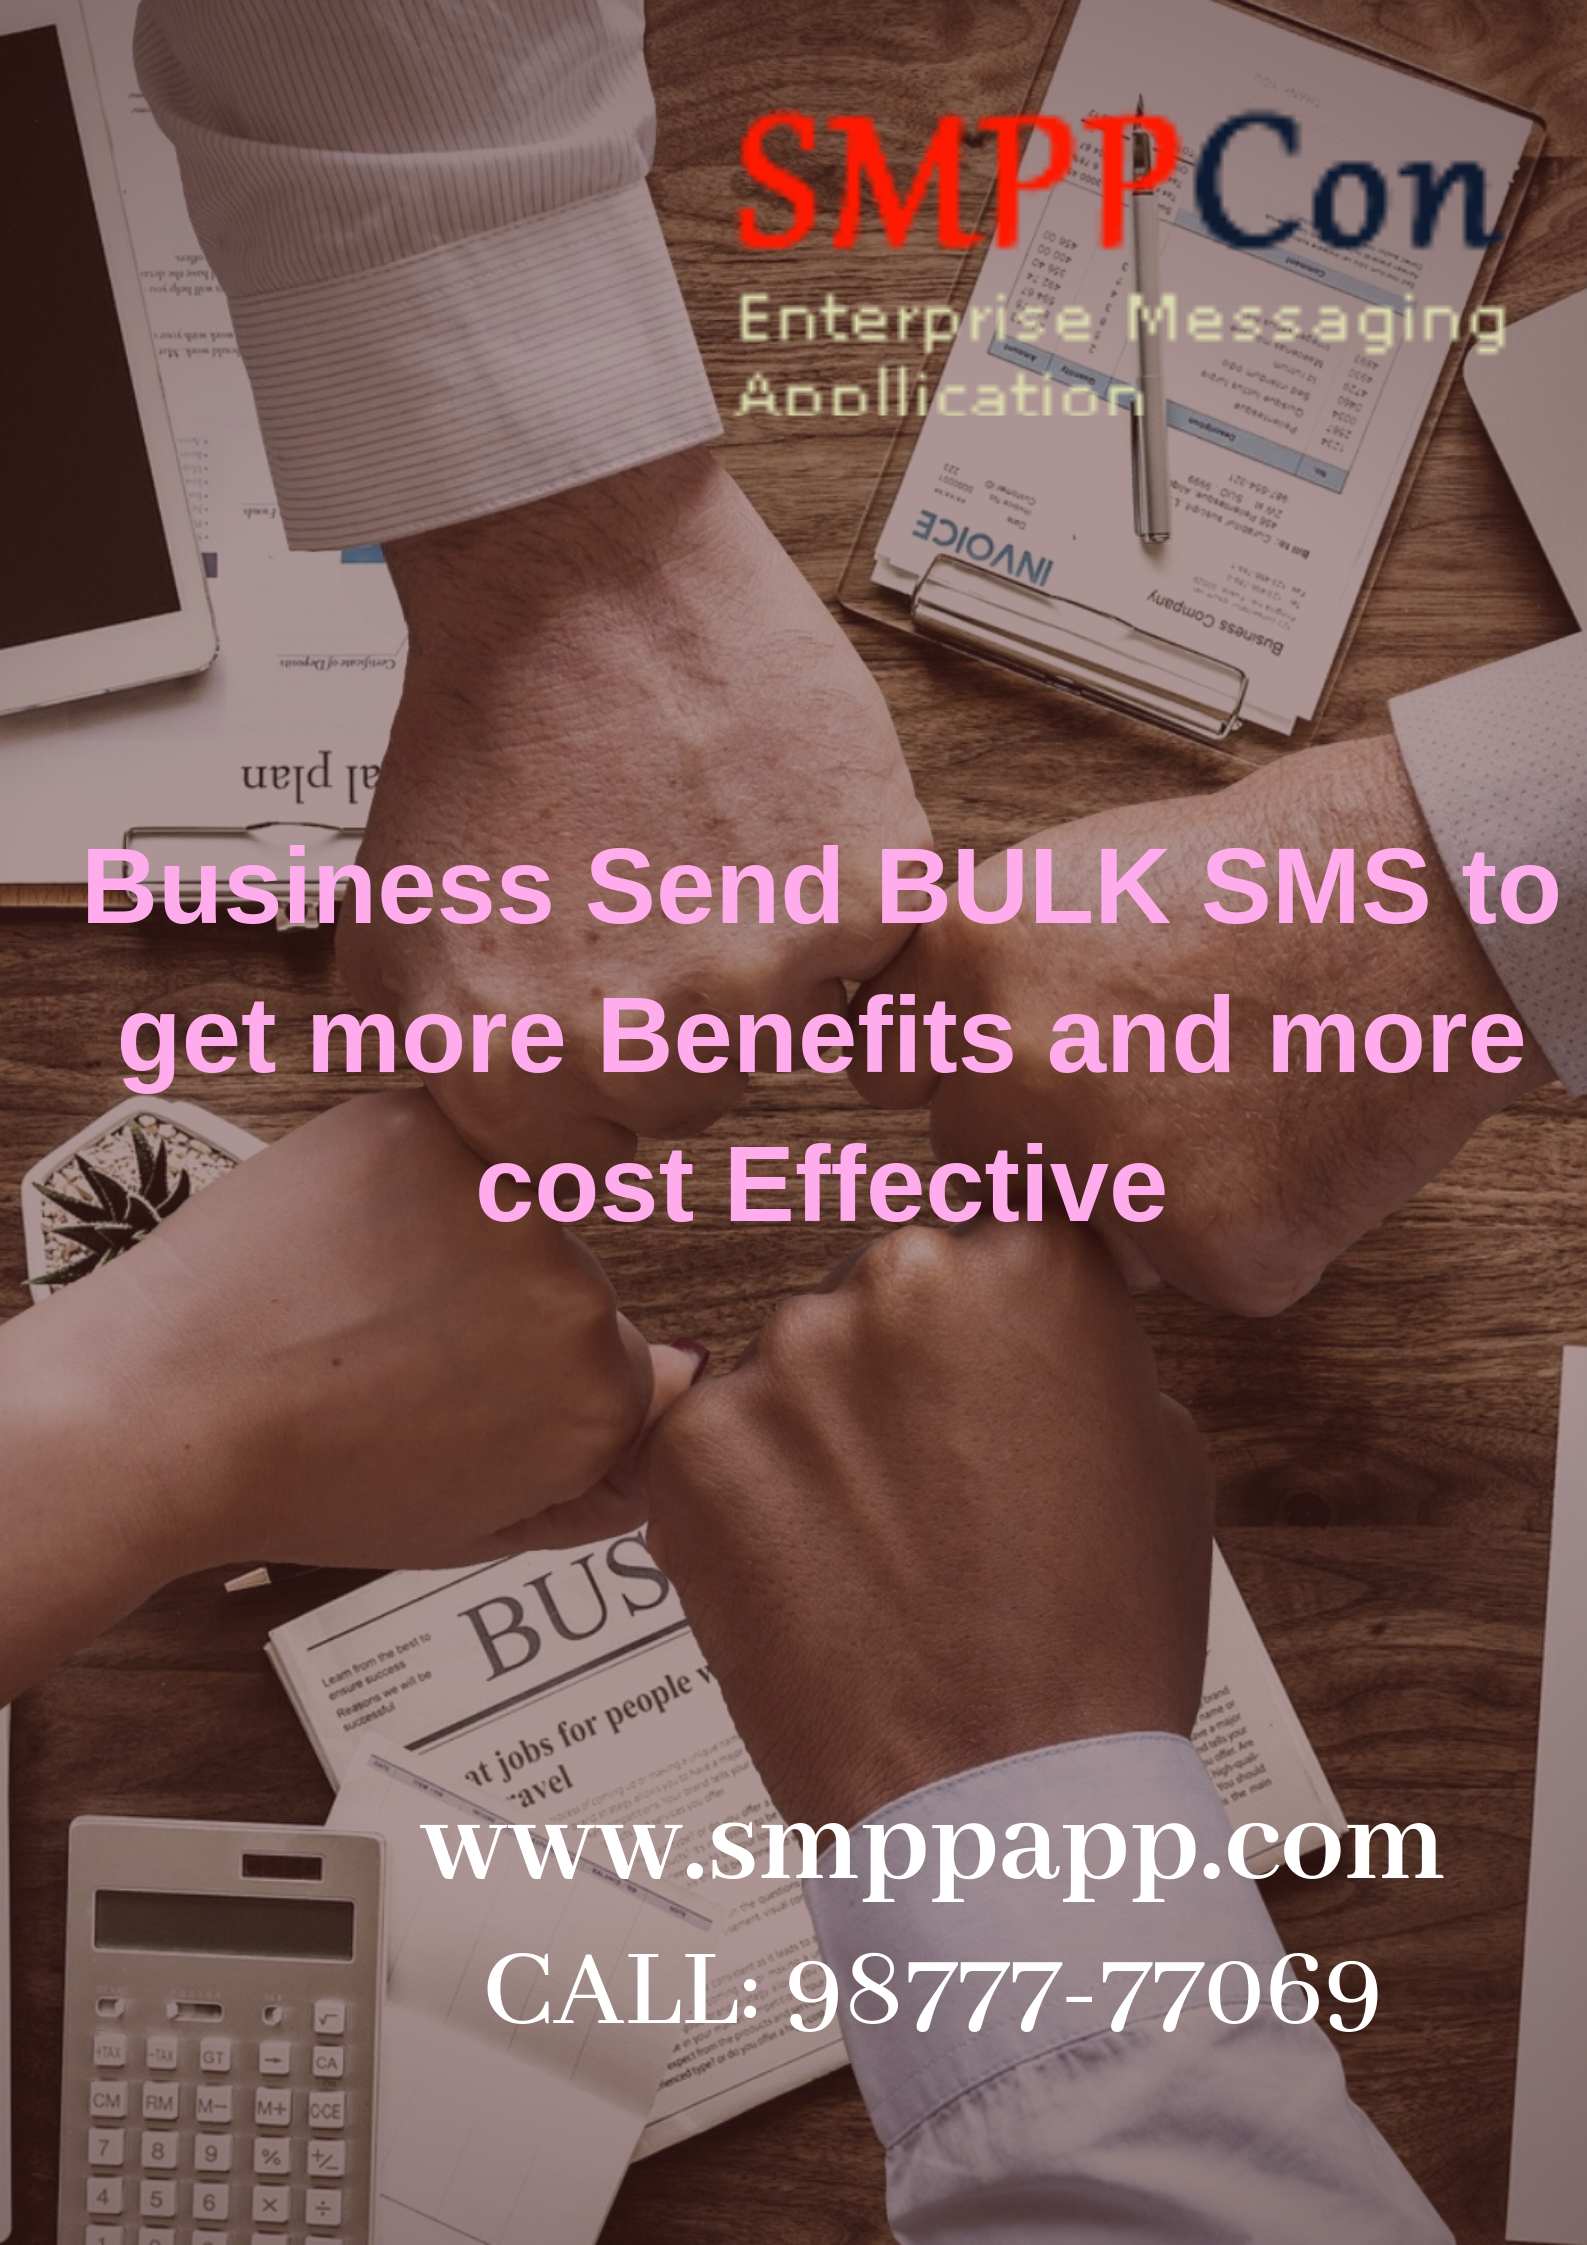 SMPP SMS Application Services Provider in India | Chennai